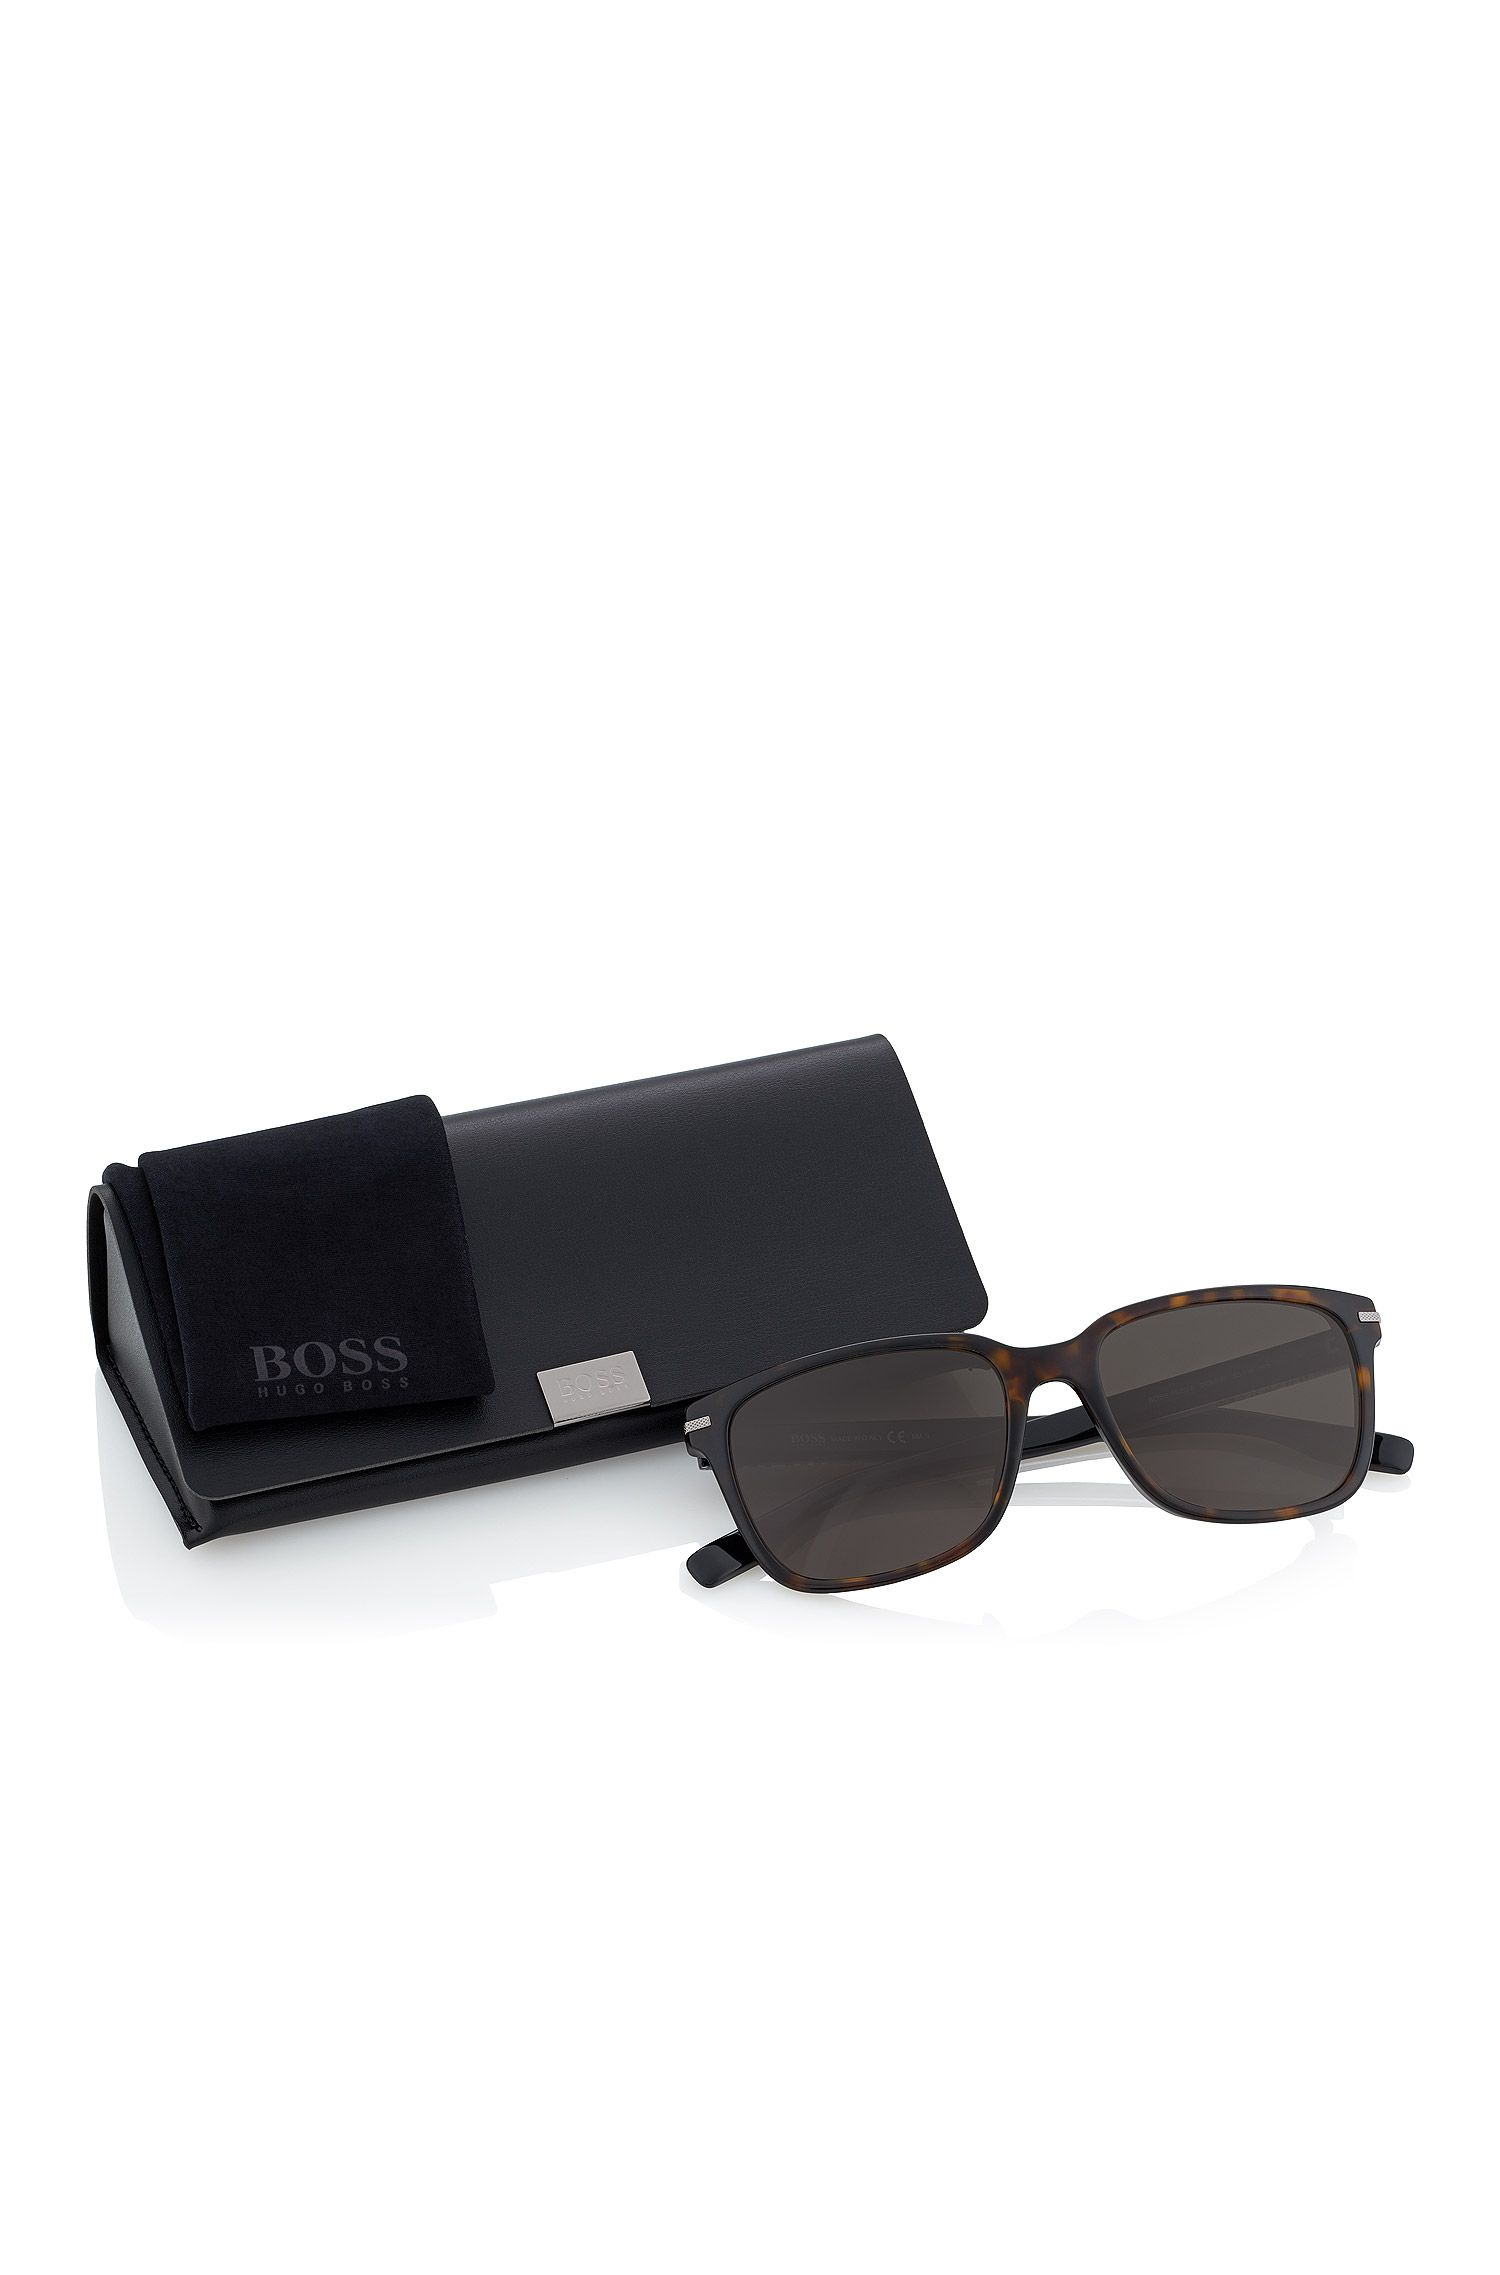 Sonnenbrille ´BOSS 0623/S`, Assorted-Pre-Pack